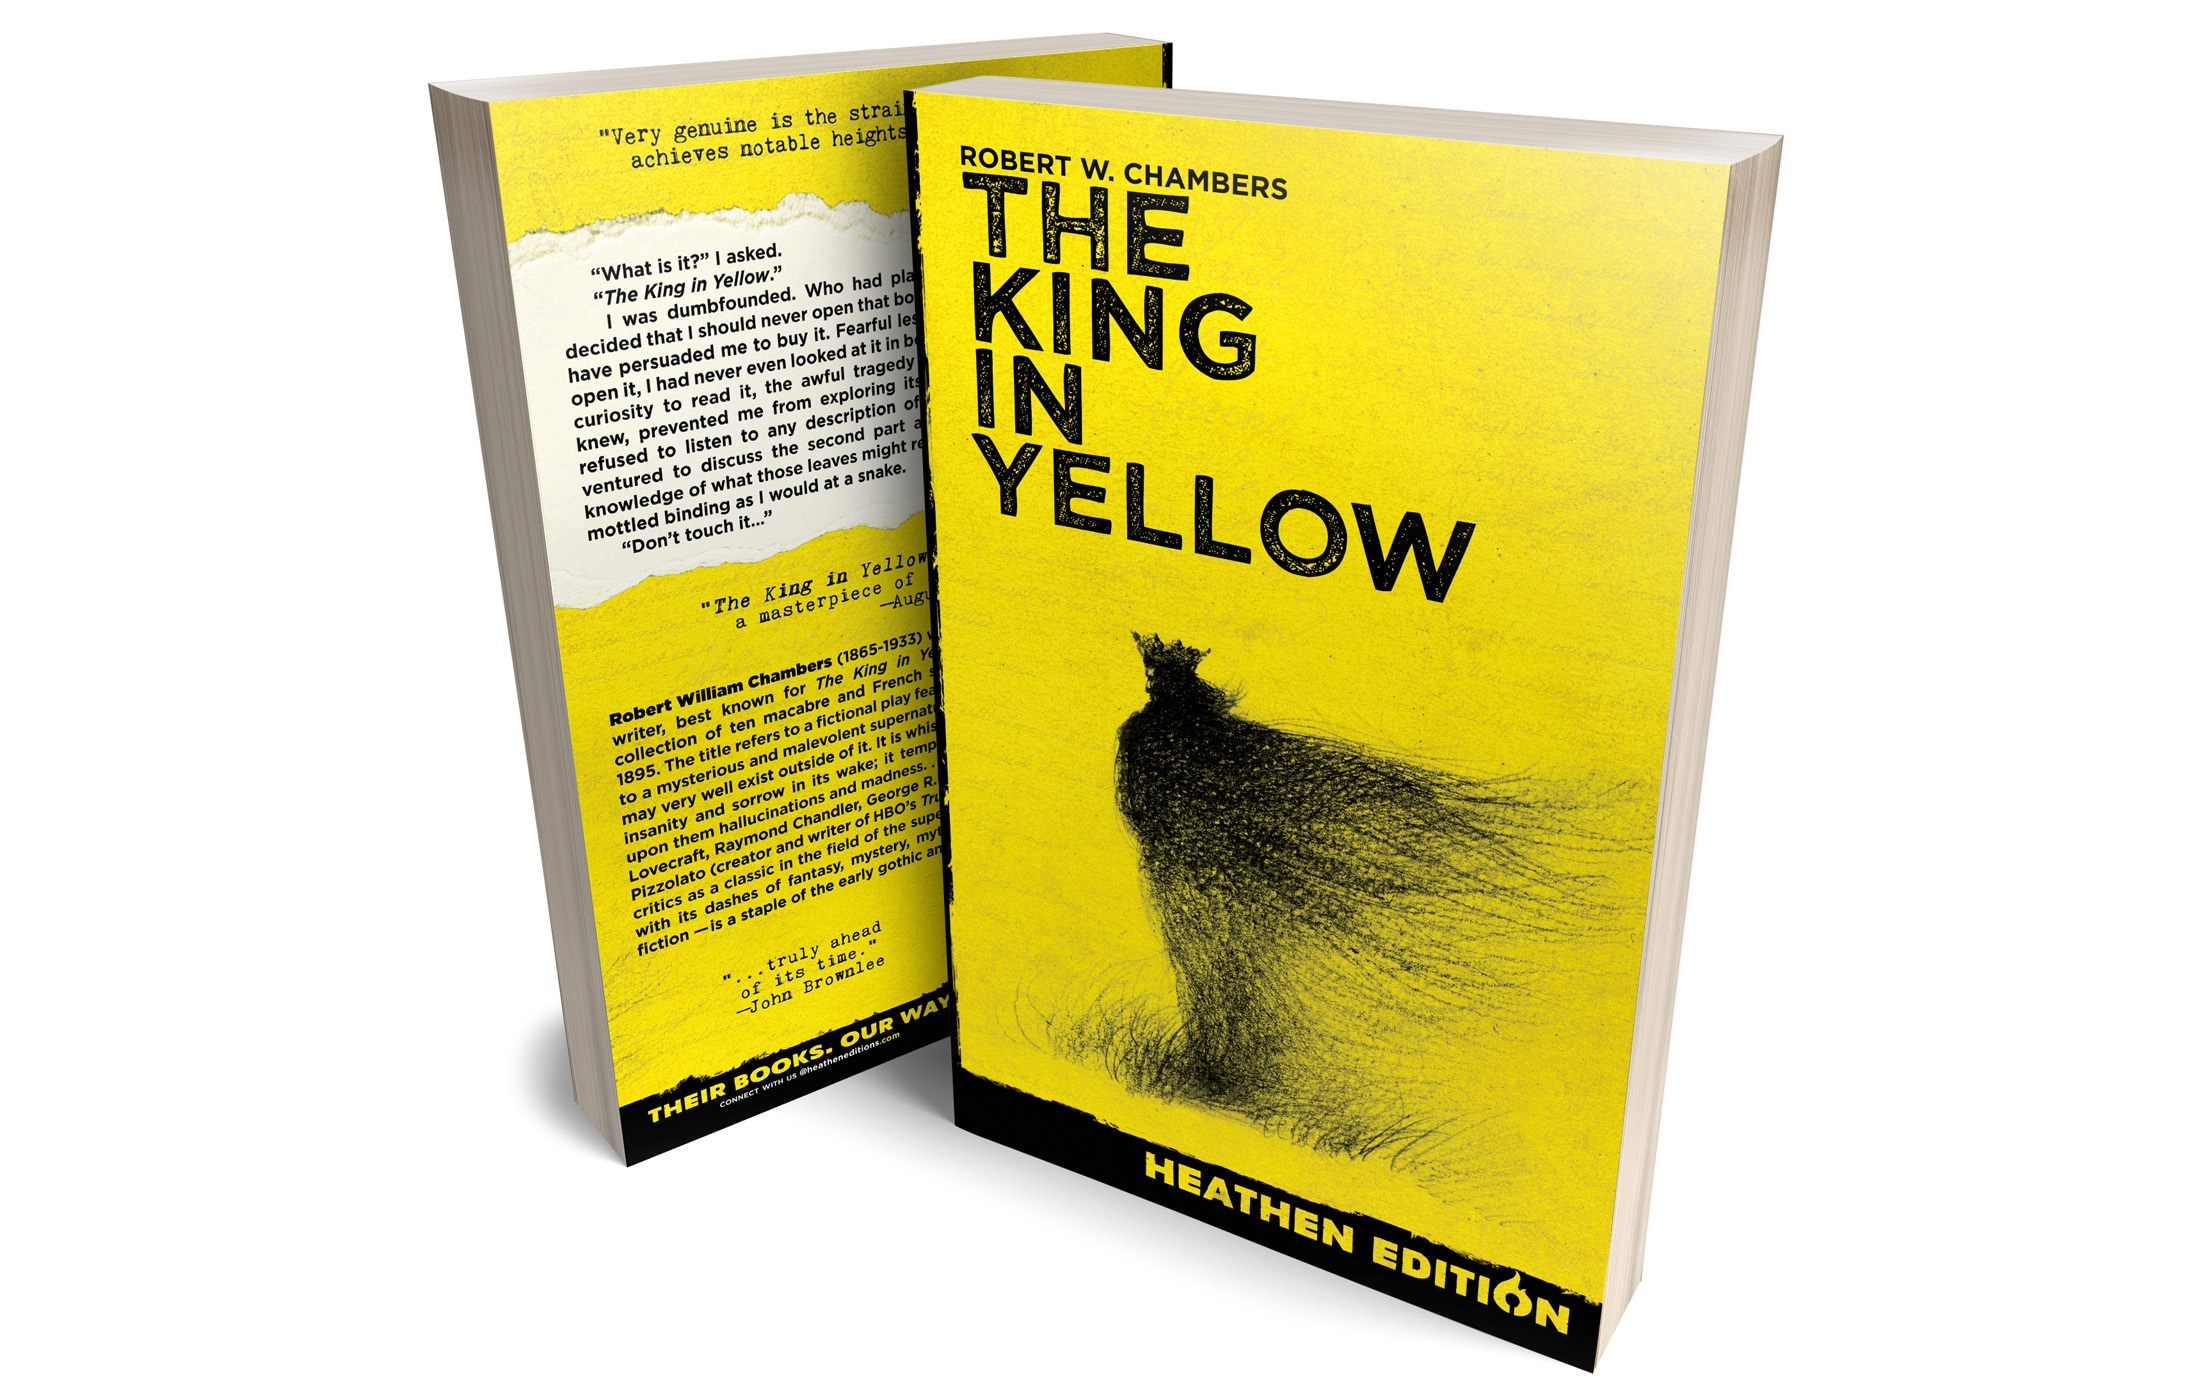 The King in Yellow by Robert W. Chambers (Heathen Edition)